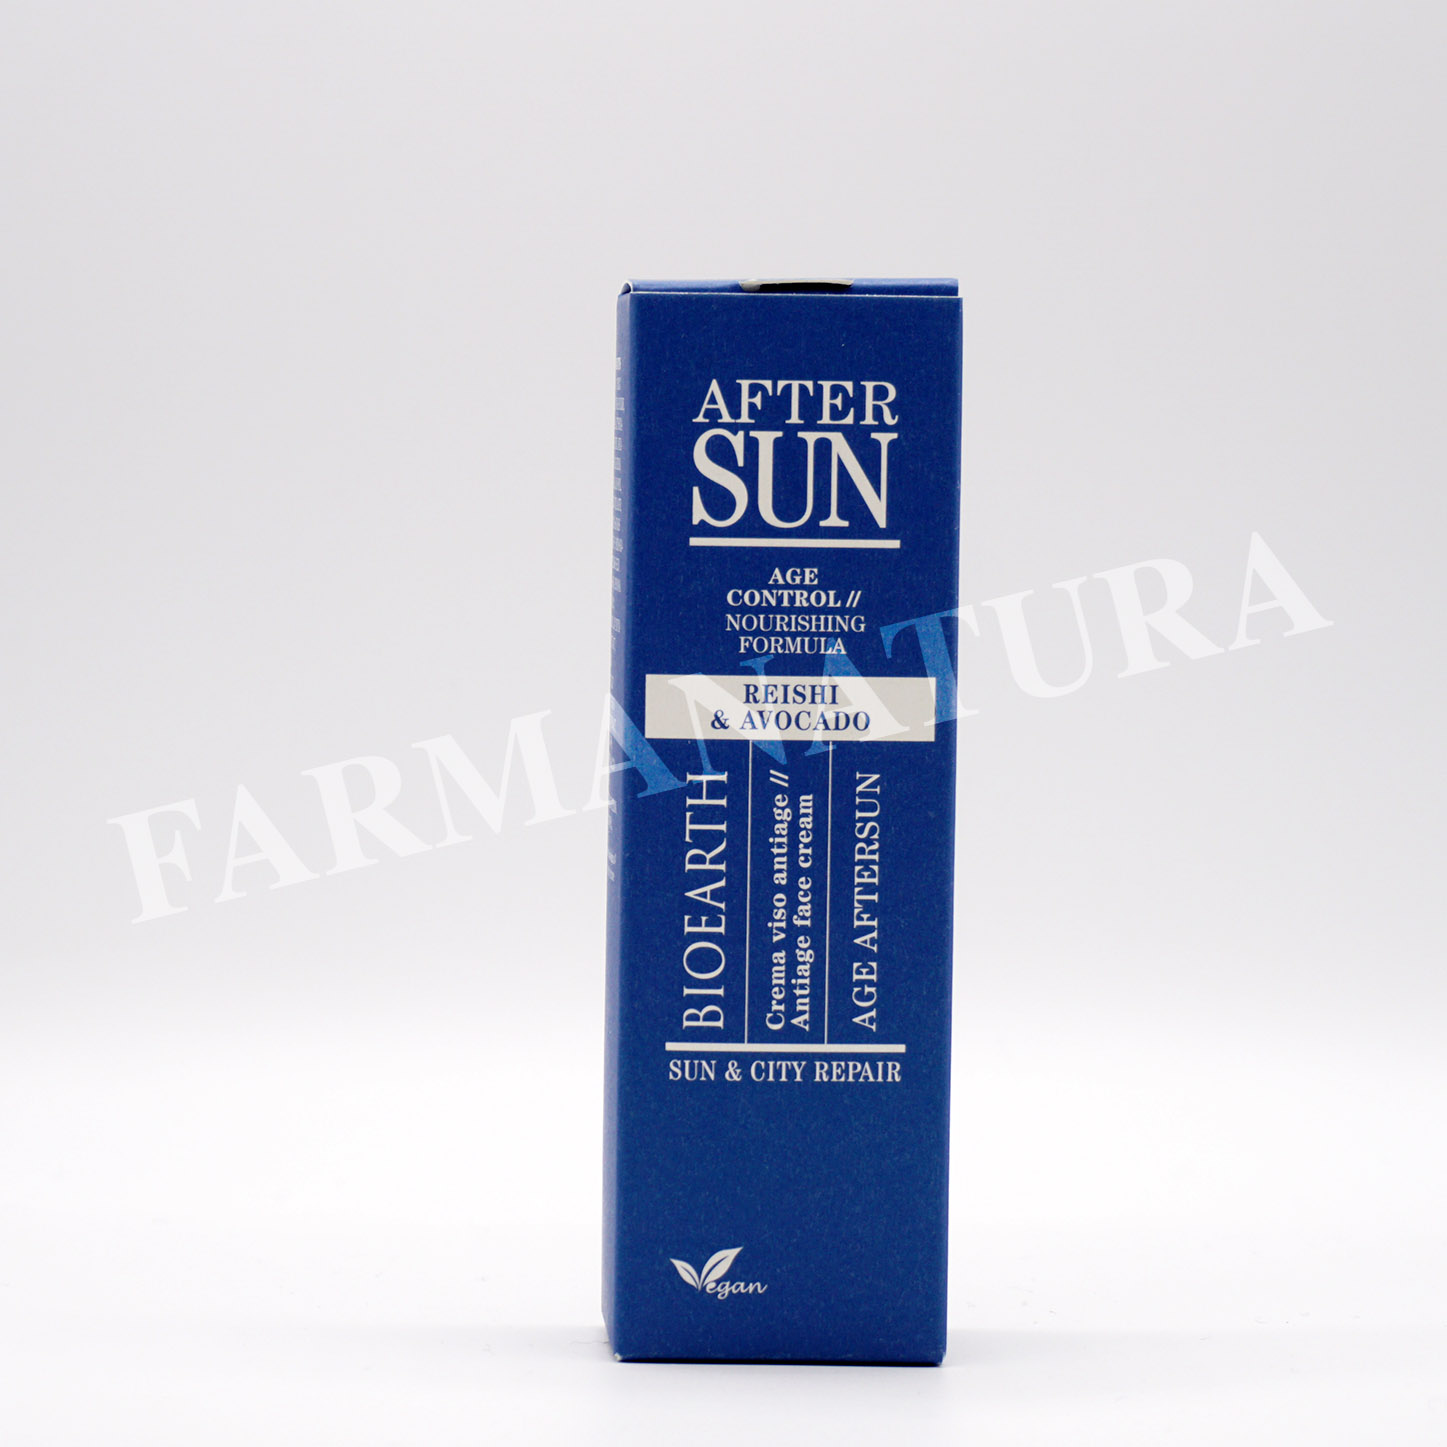 Sun&City Repair Aftersun Viso Antiage 50Ml